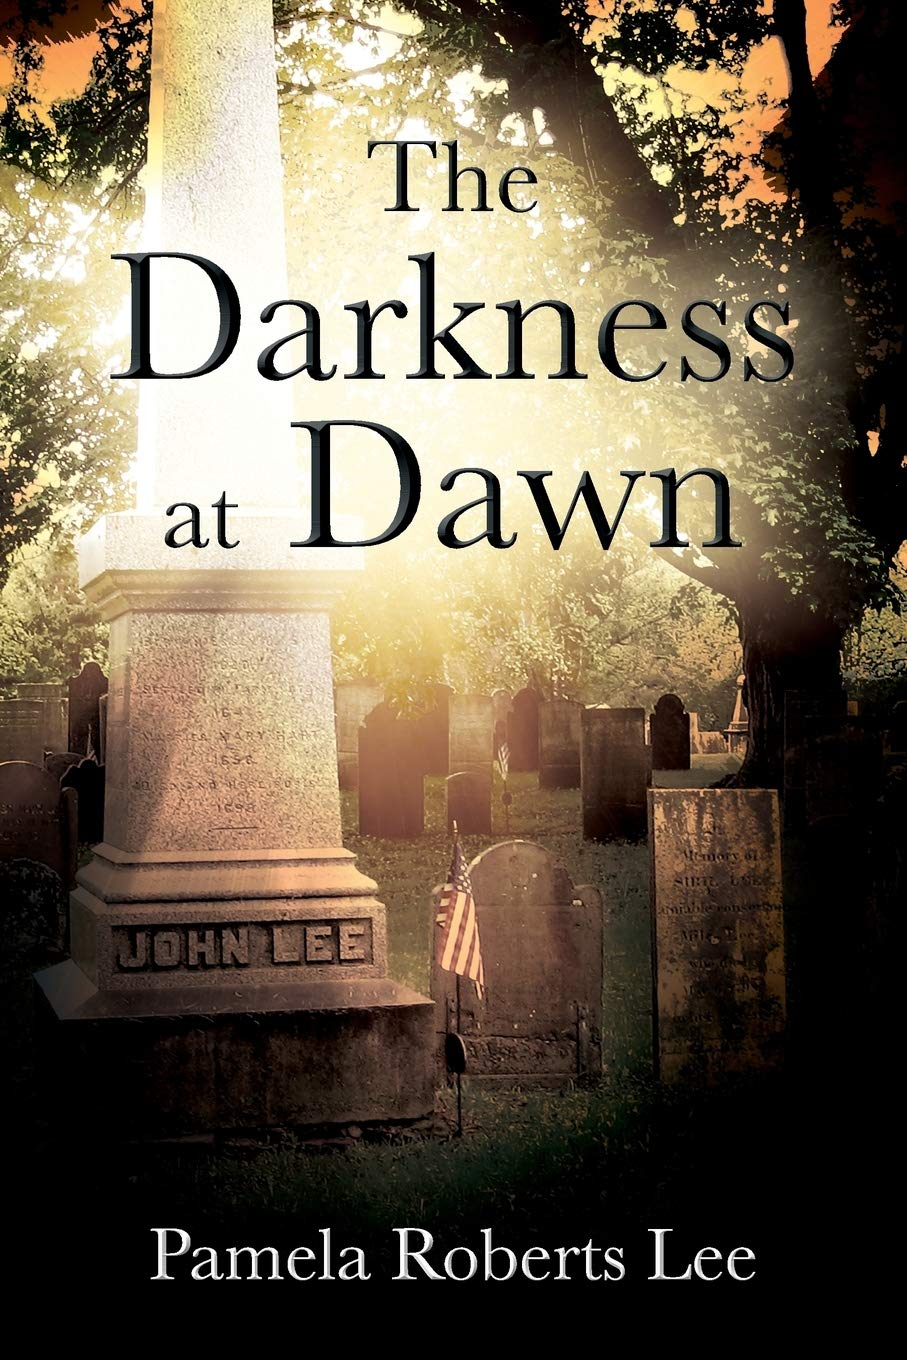 The Darkness at Dawn